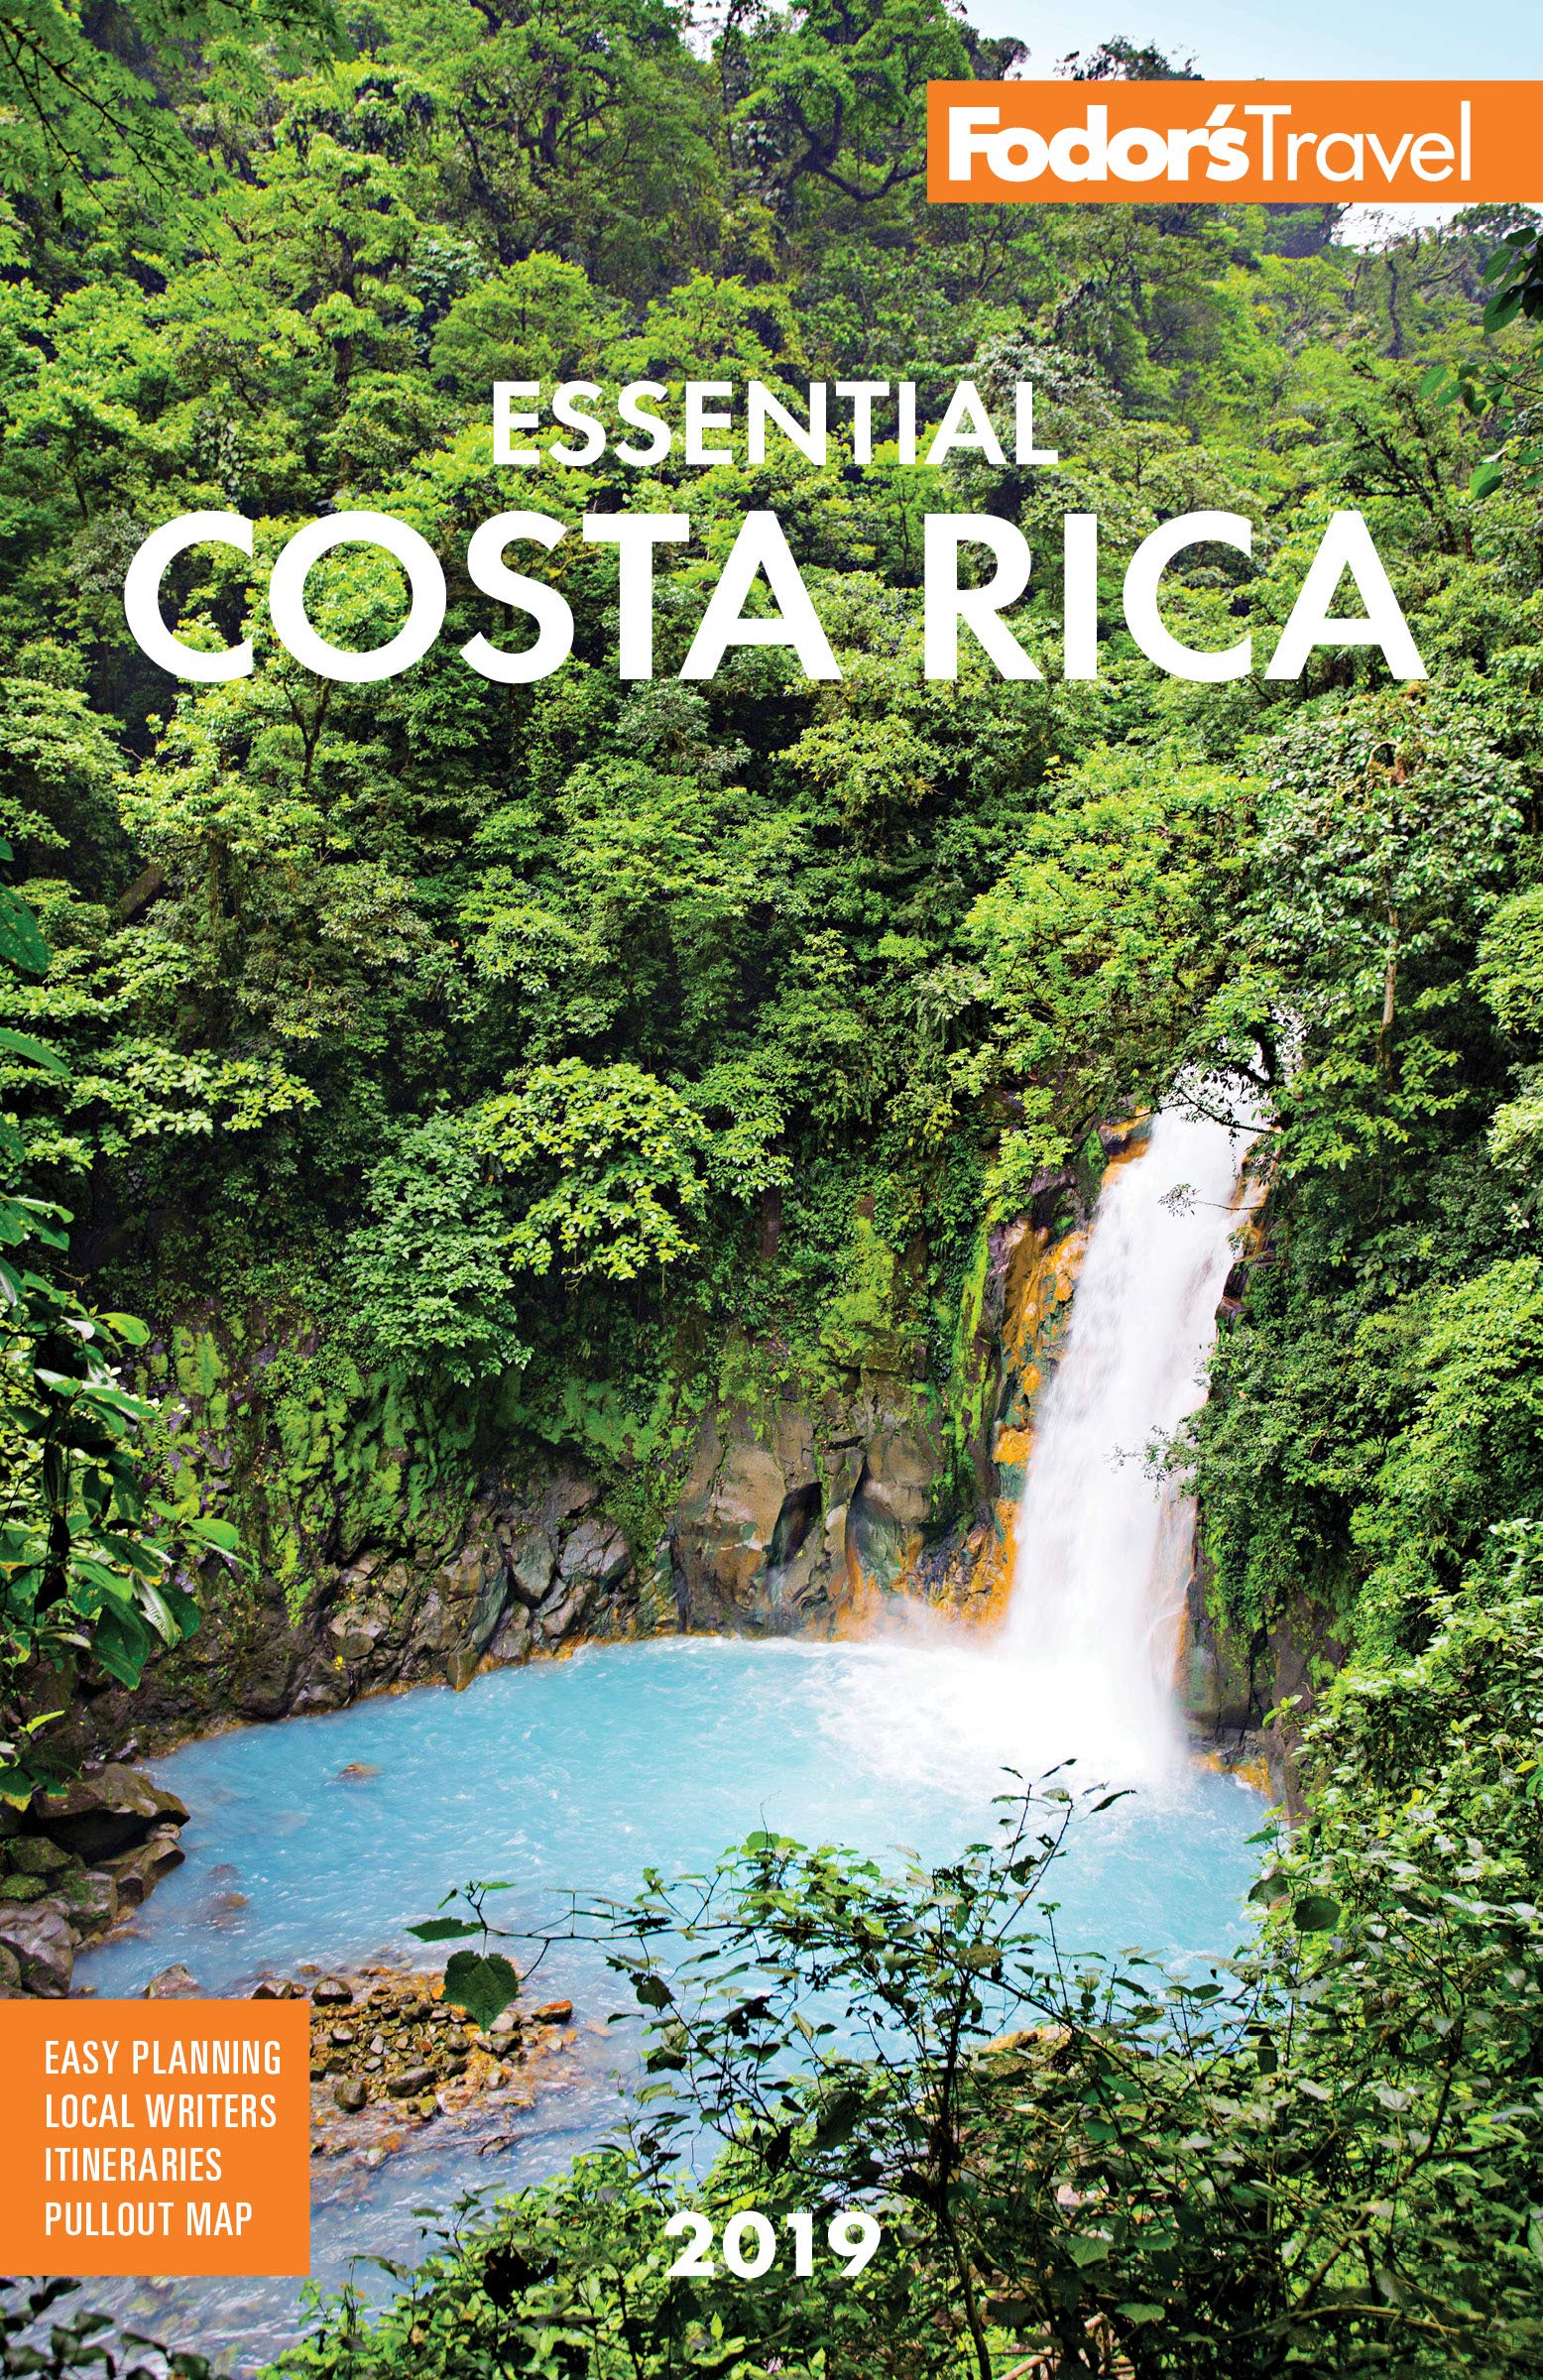 Fodor's Essential Costa Rica 2019 (Full-color Travel Guide): Fodor's Travel  Guides: 9781640970786: Amazon.com: Books